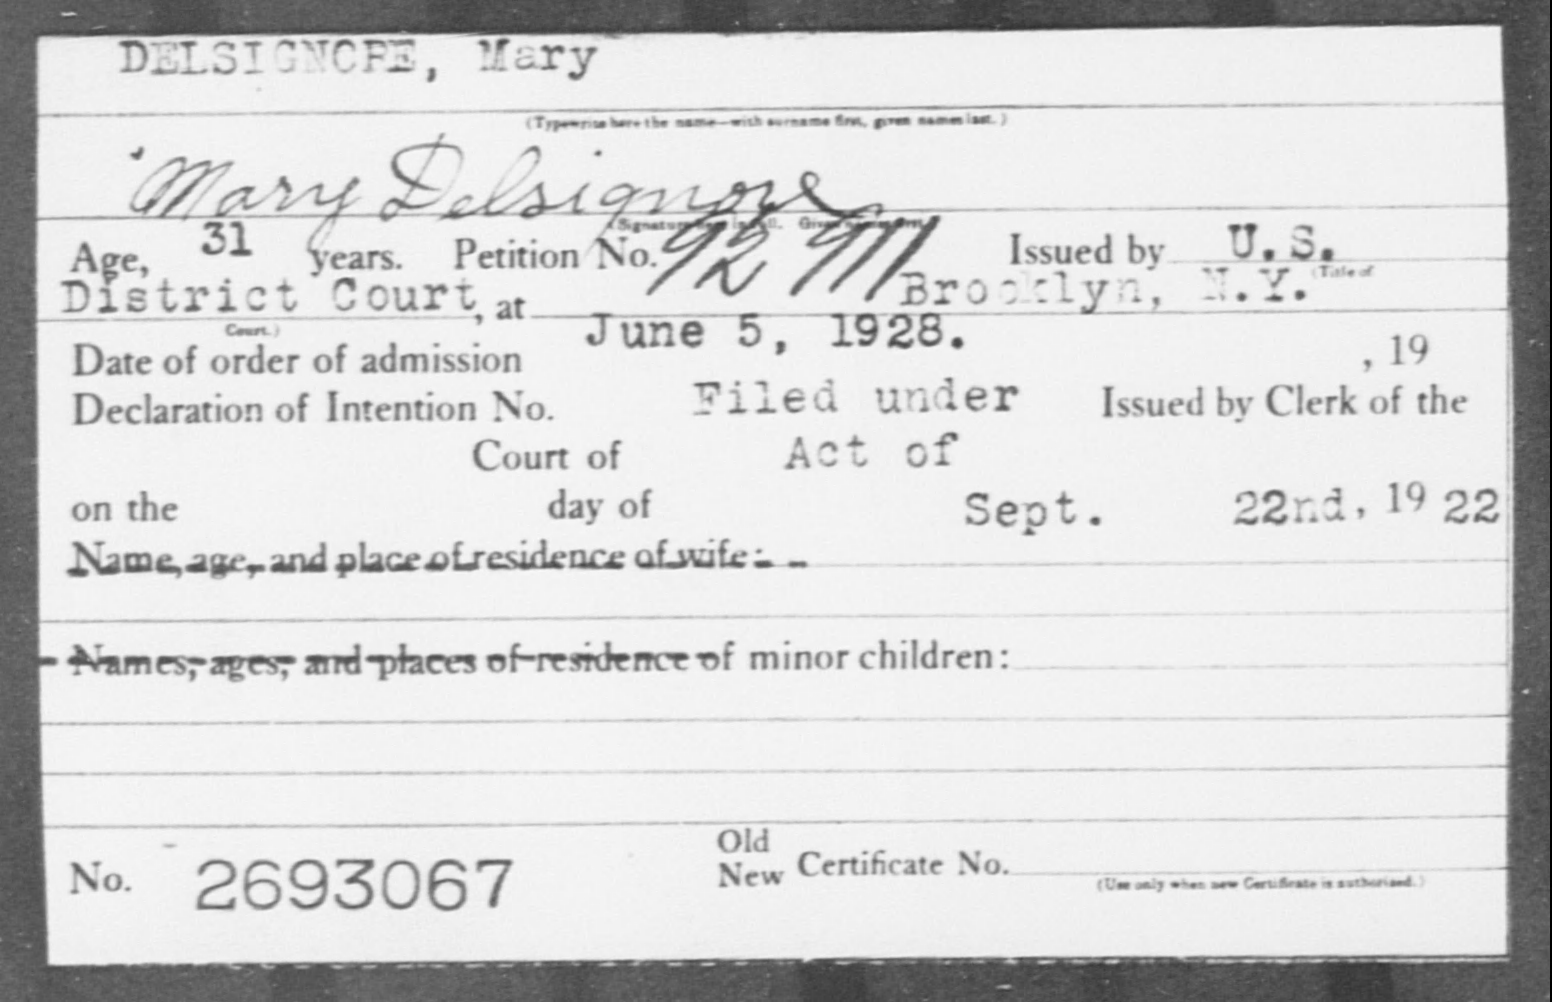 DELSIGNORE, Mary - Born: [BLANK], Naturalized: 1928